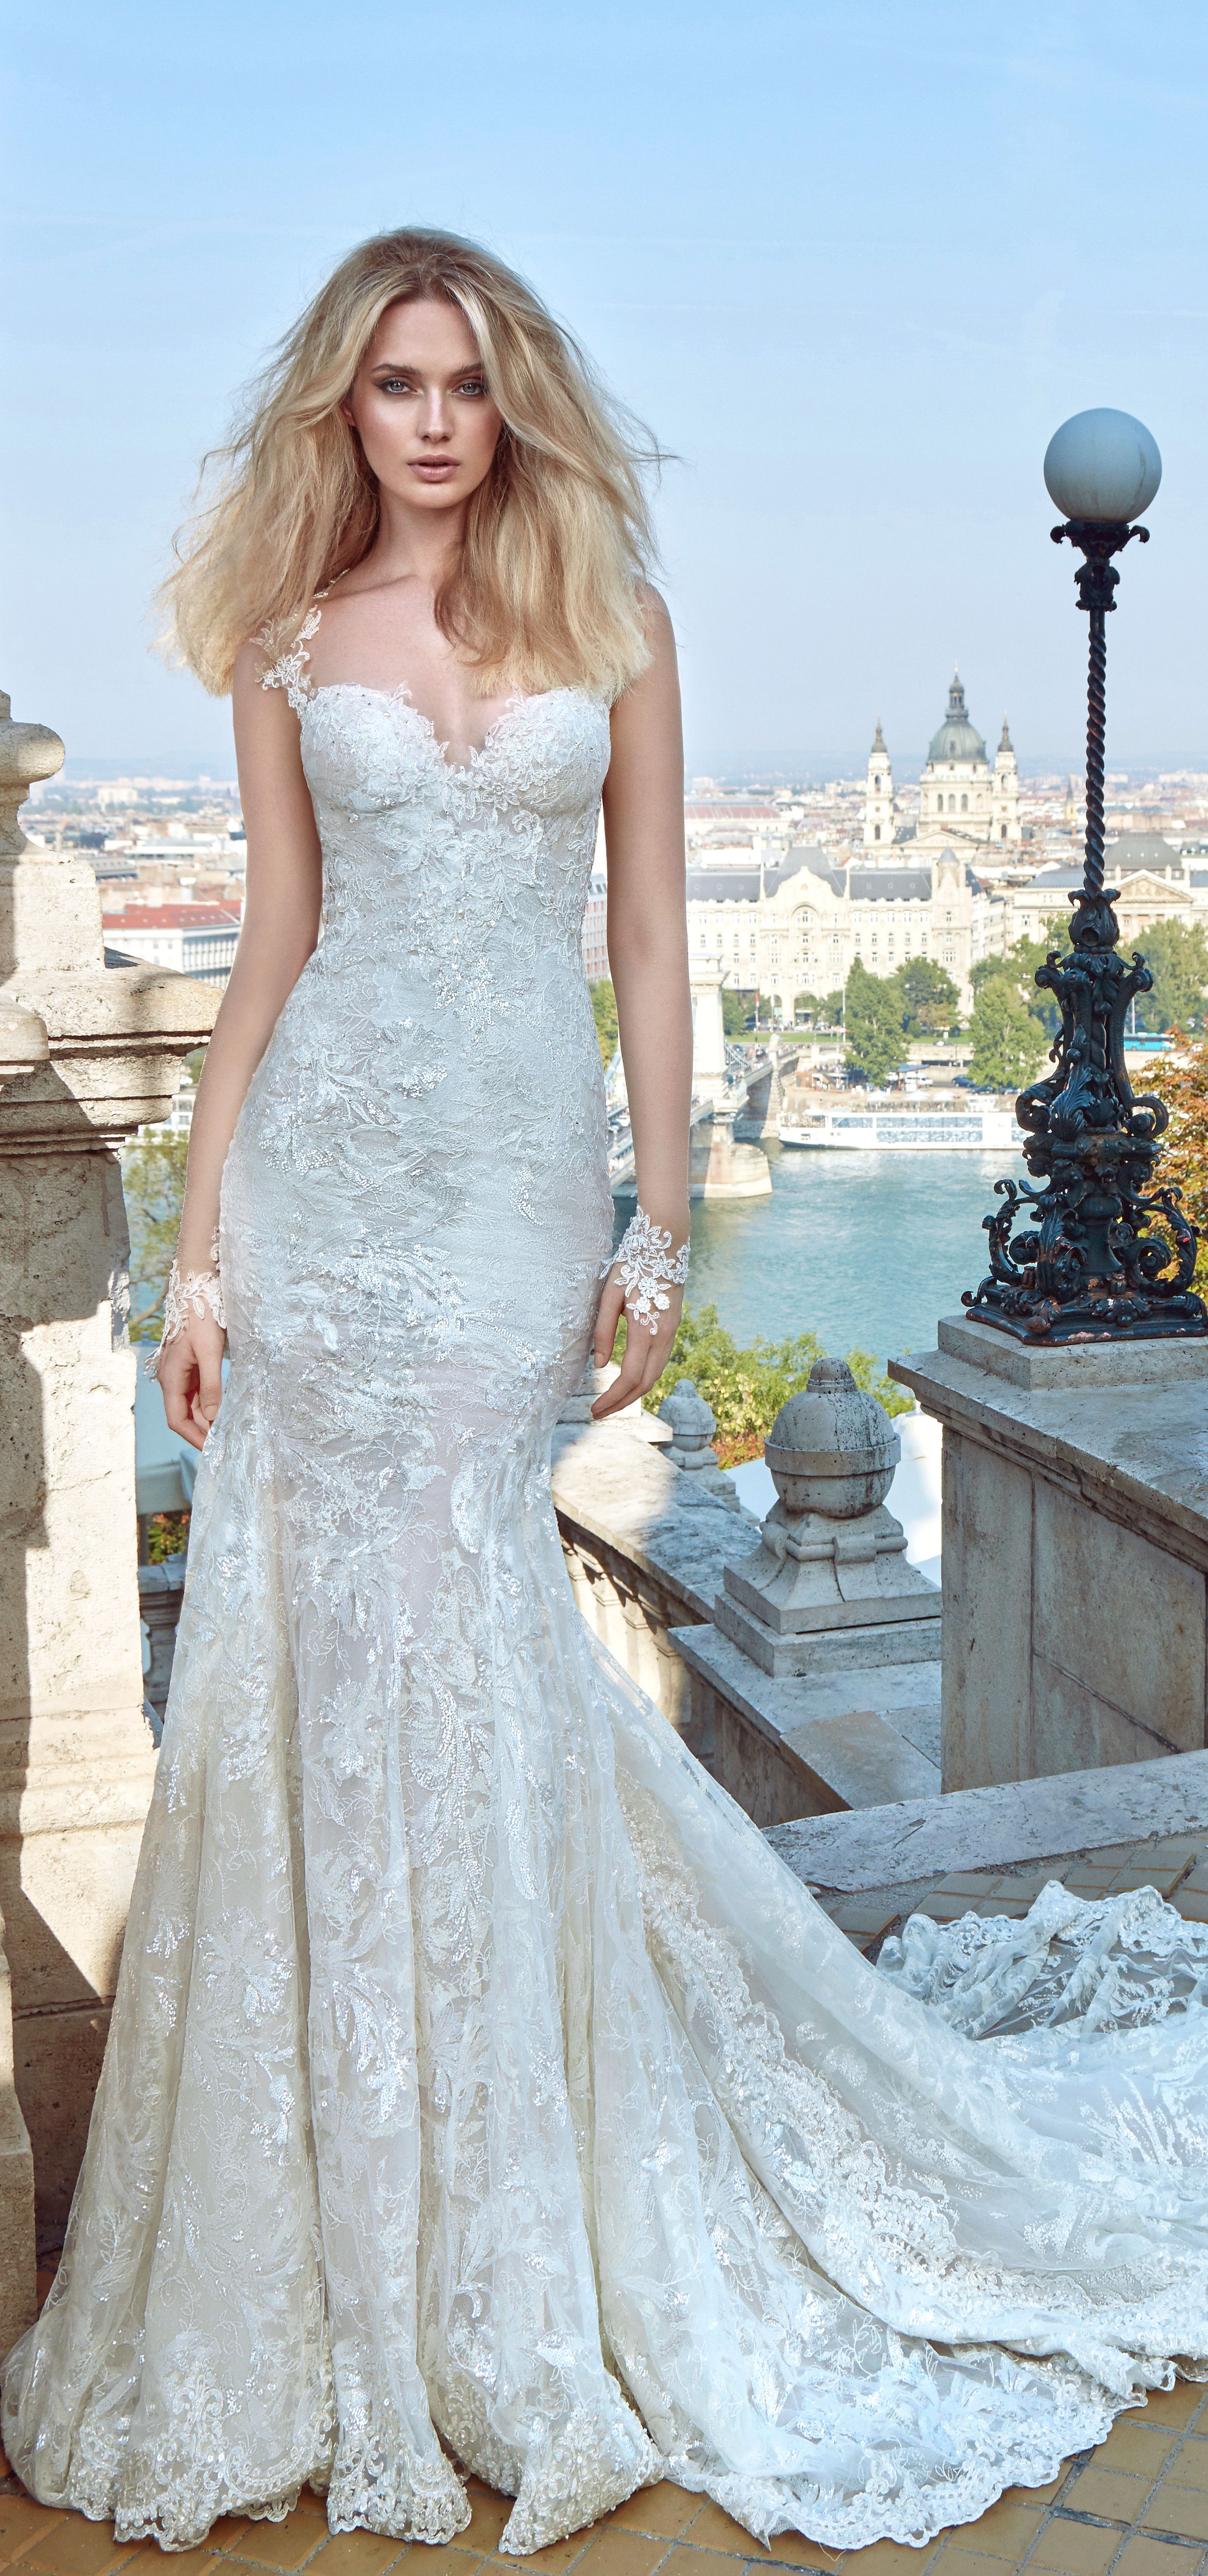 Old Fashioned Medieval Wedding Dress Component - All Wedding Dresses ...